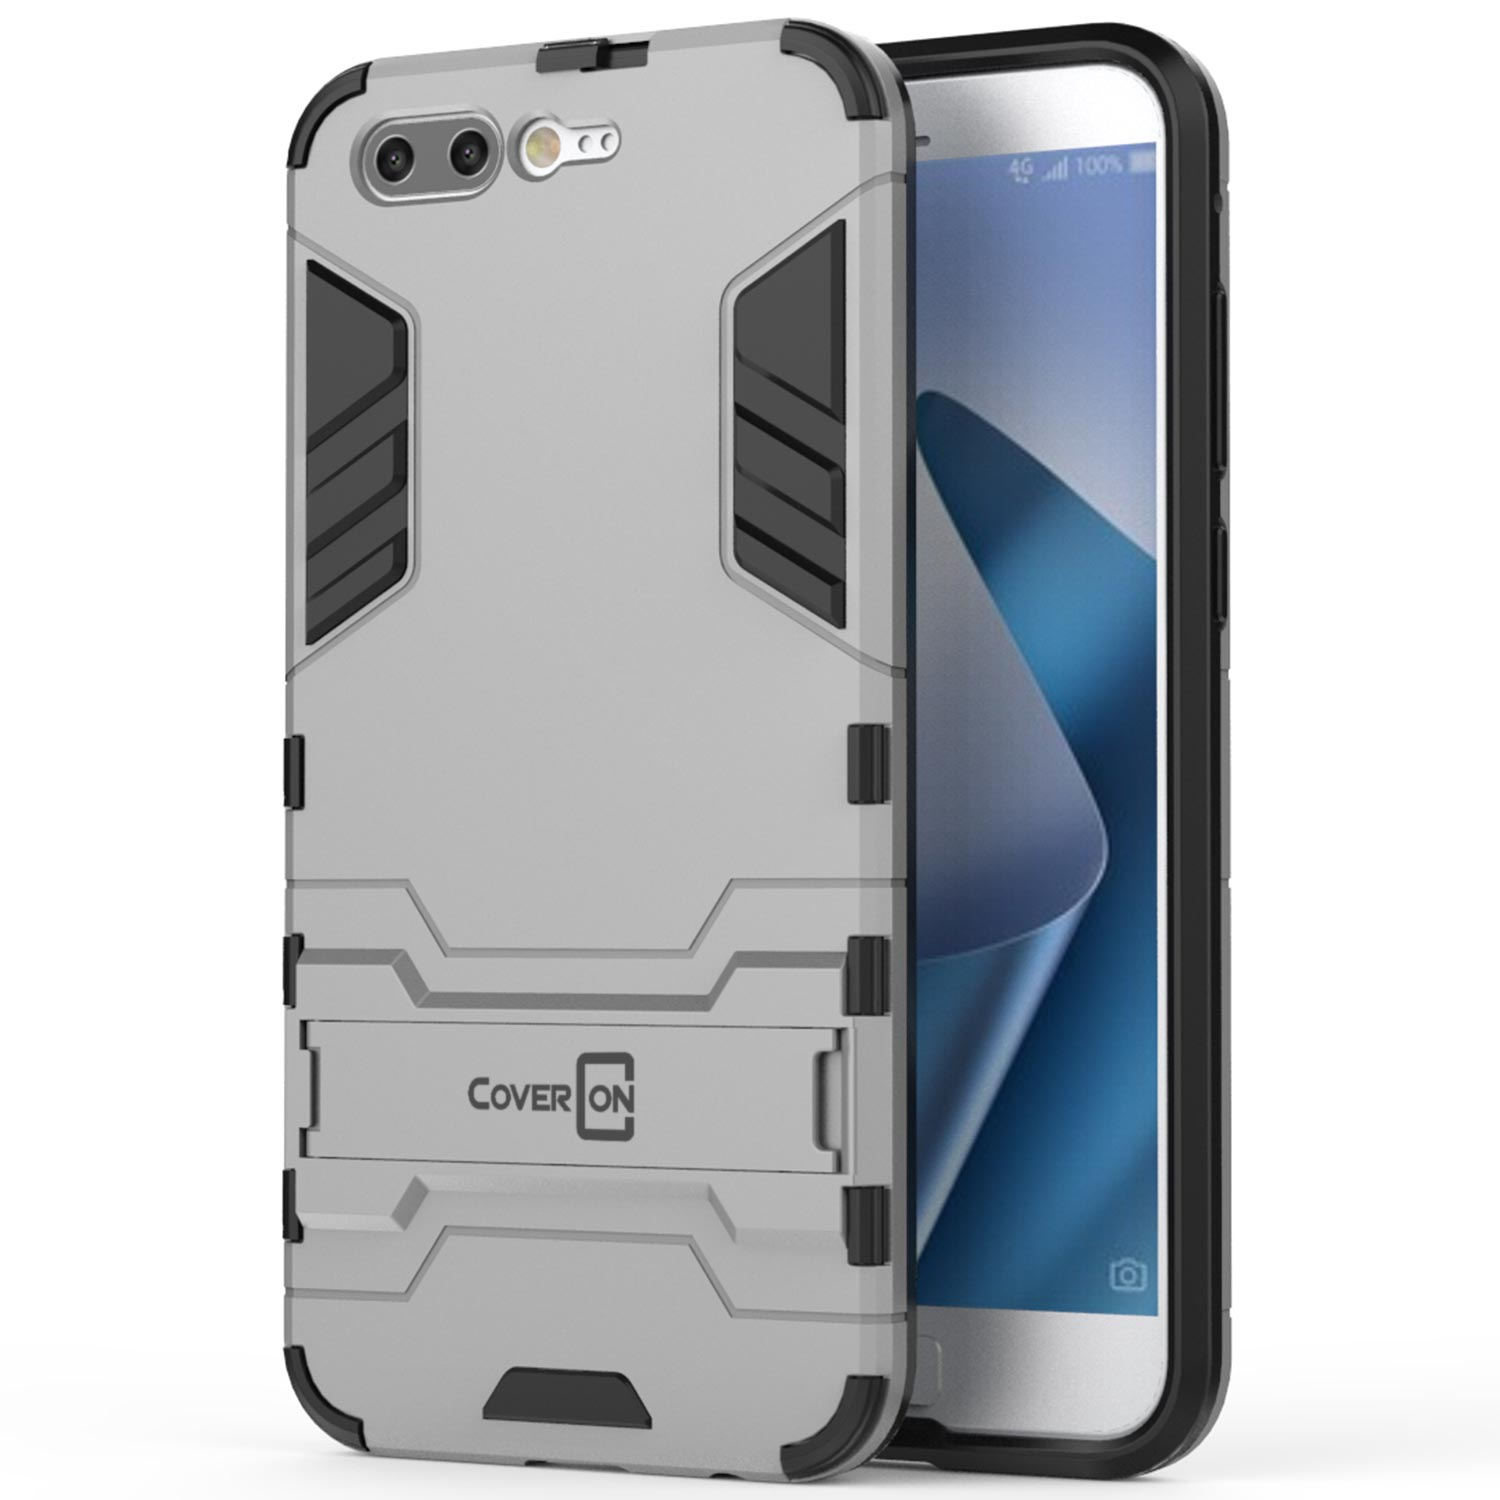 Hyun Black Tyre Pattern Design Heavy Duty Hard Extreme Protection Case with Kickstand Shock Absorbing Detachable 2 in 1 Case Cover for ASUS ZenFone 4 ZE554KL ZenFone 4 ZE554KL Case